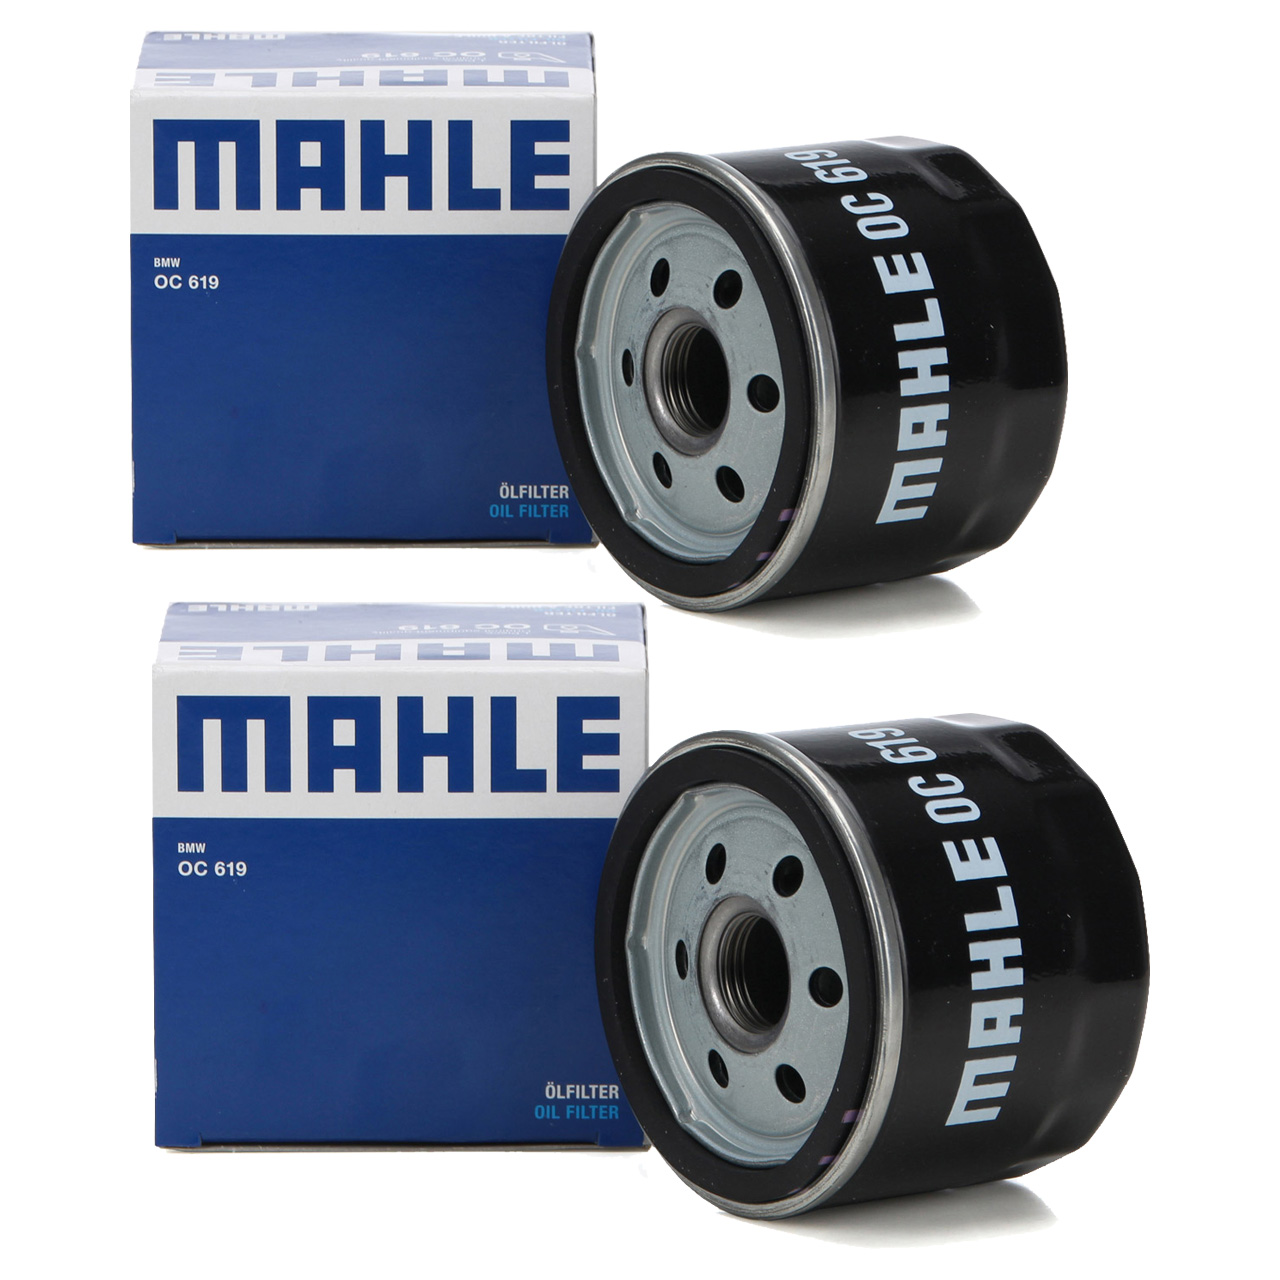 2x KNECHT / MAHLE OC619 Ölfilter für BMW MOTORCYCLES R1200 GS / RS 125 PS